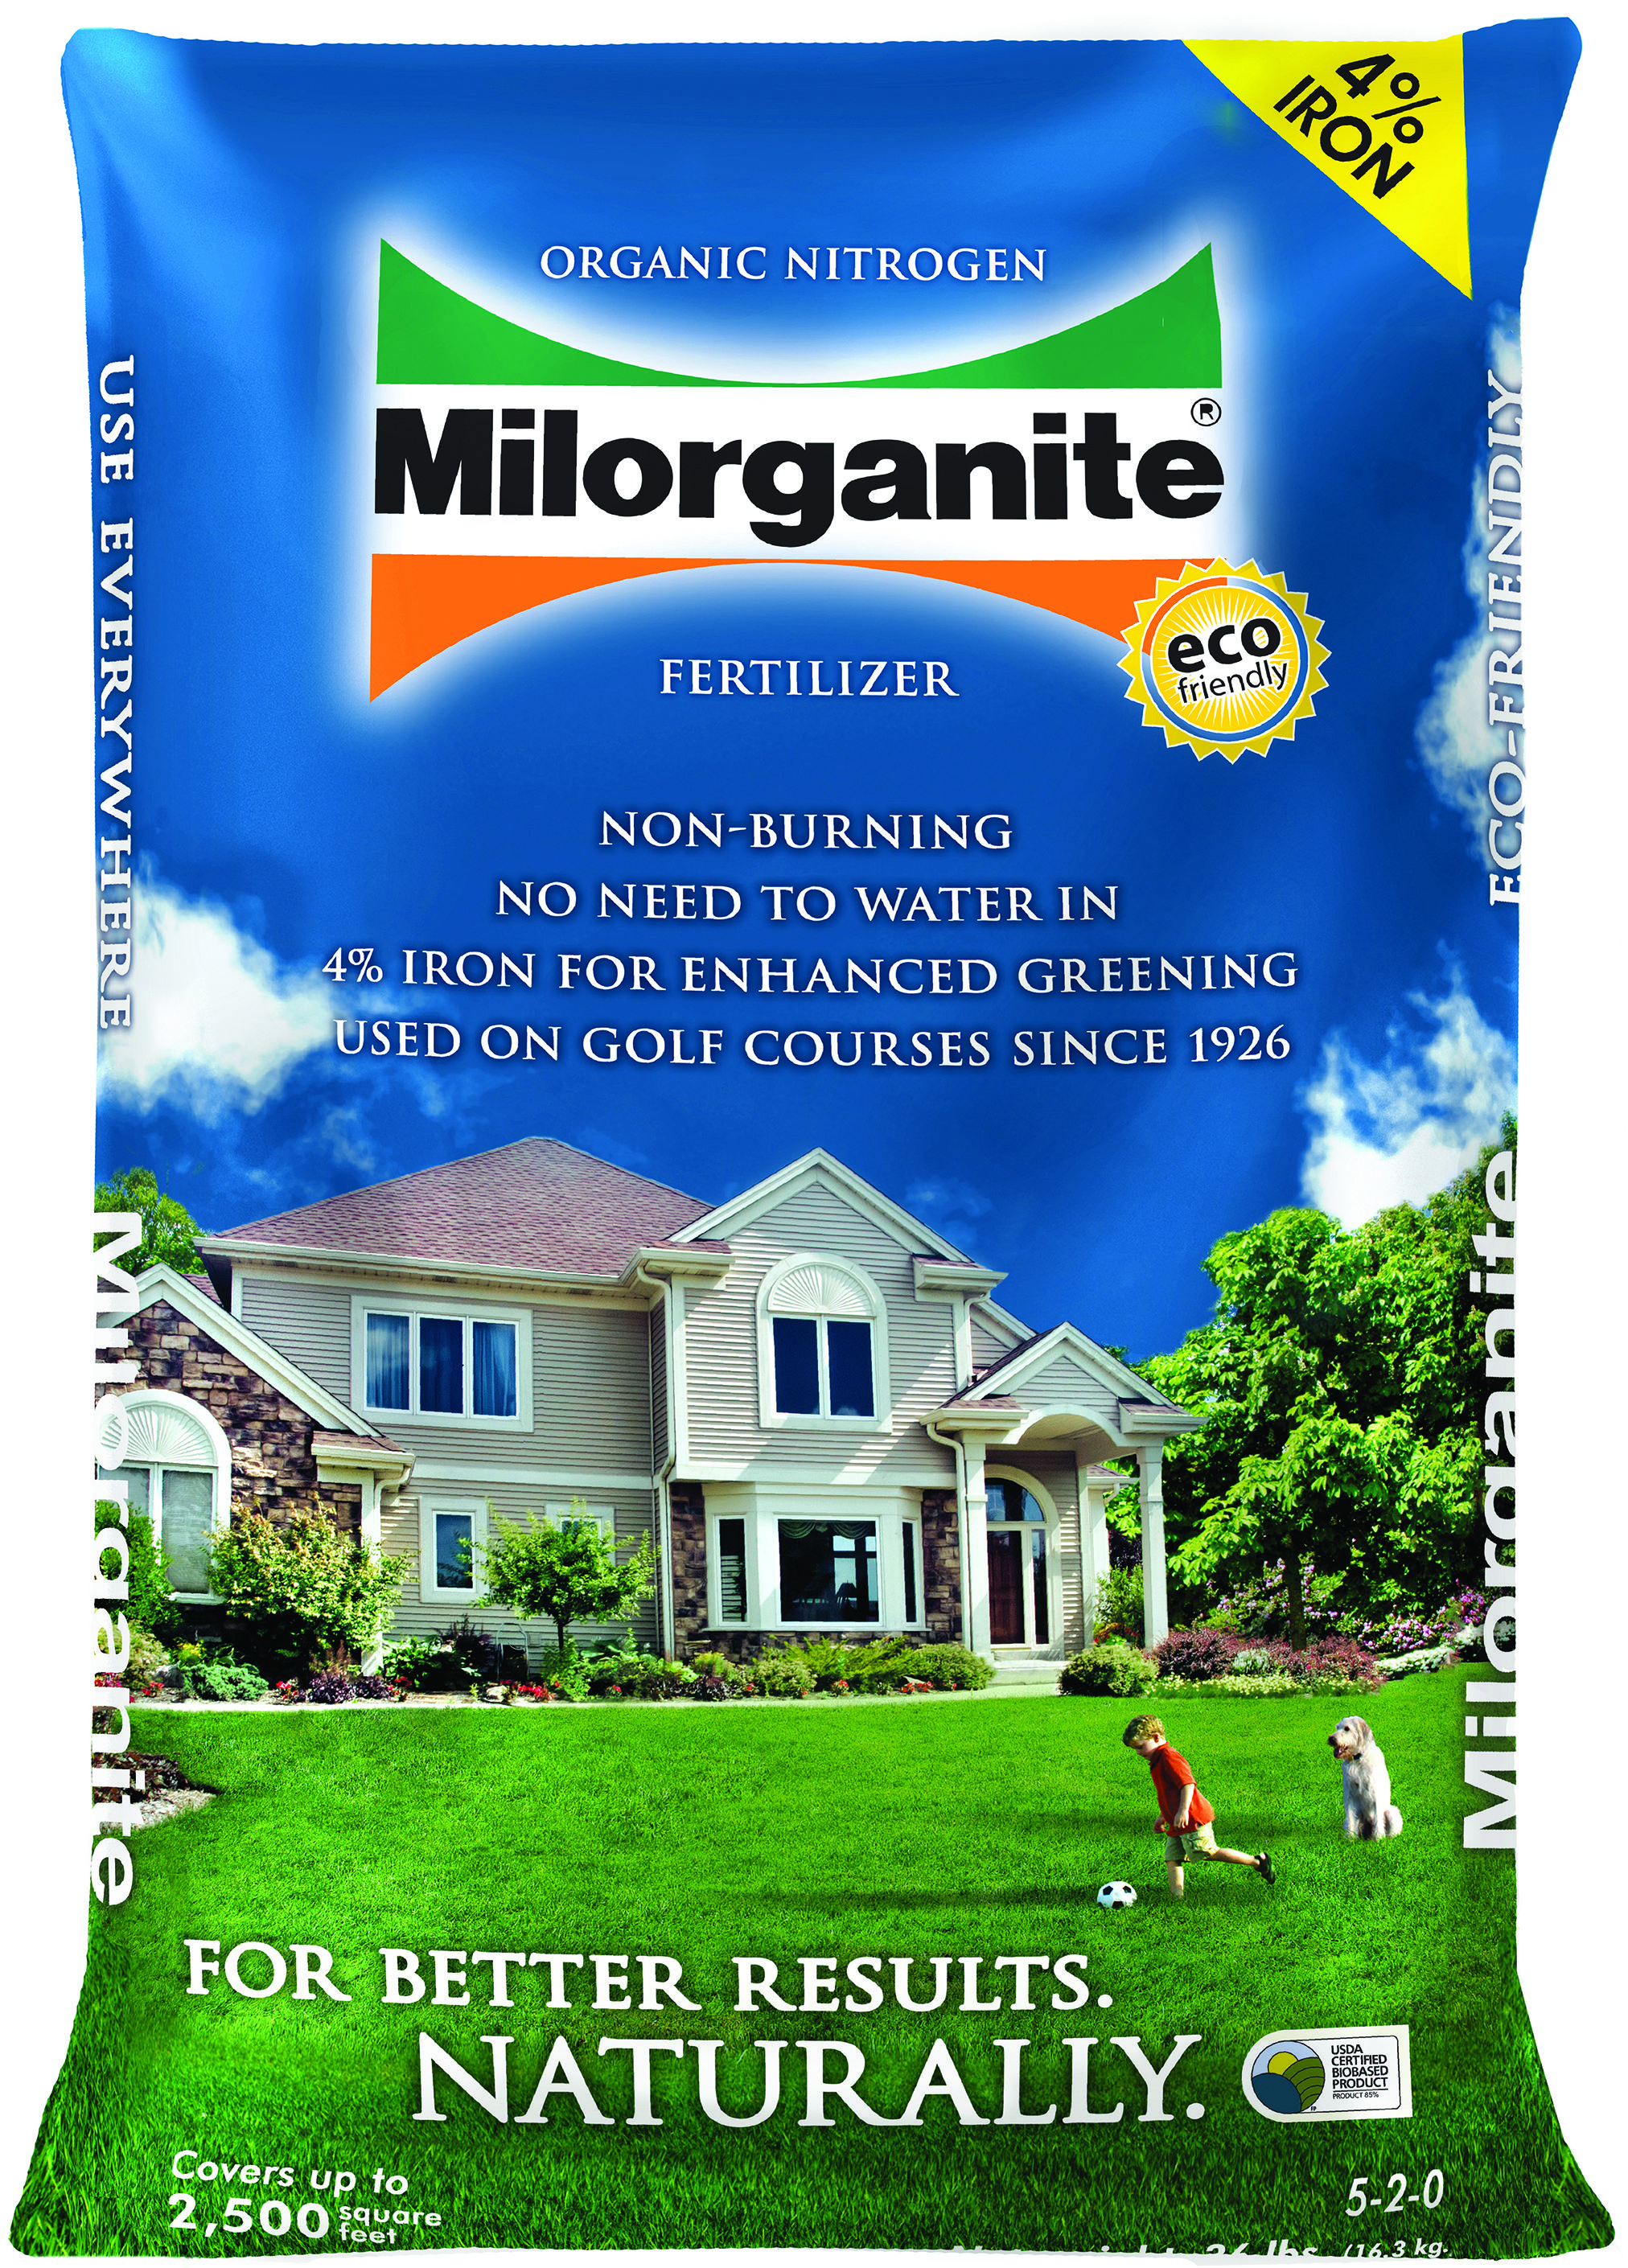 Milorganite W 4 Fe 5 2 0 36lb 56 Per Pallet Eco Friendly Non Burning Milorganite Contains Organic Slow Rel Milorganite Milorganite Lawn Lawn Fertilizer